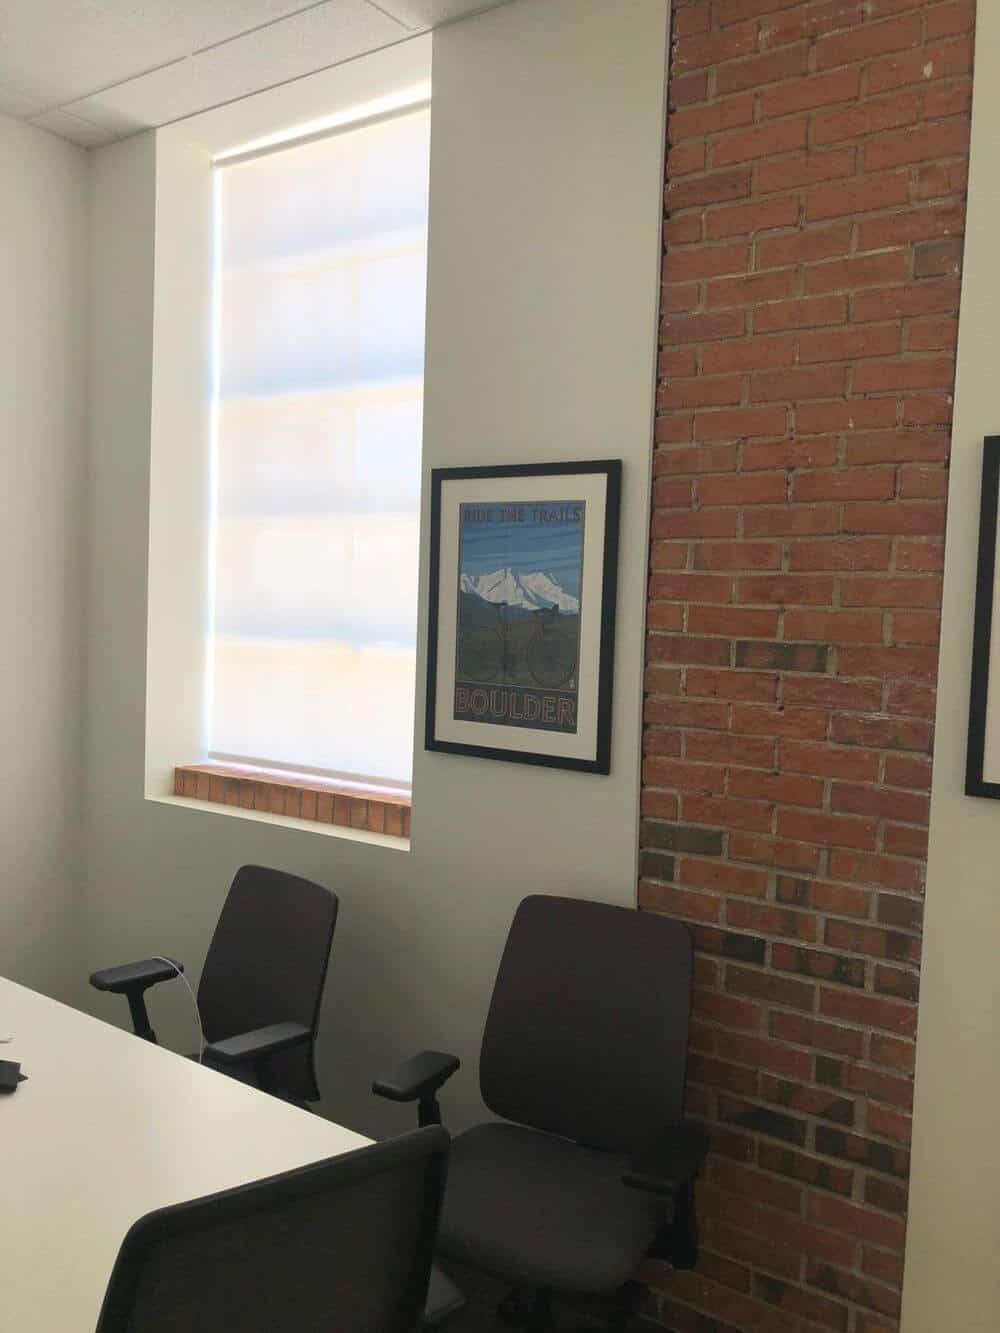 This office room boasts a simple office table paired with modern office chairs. The room features custom ceiling and walls, along with glass windows featuring solar shades.